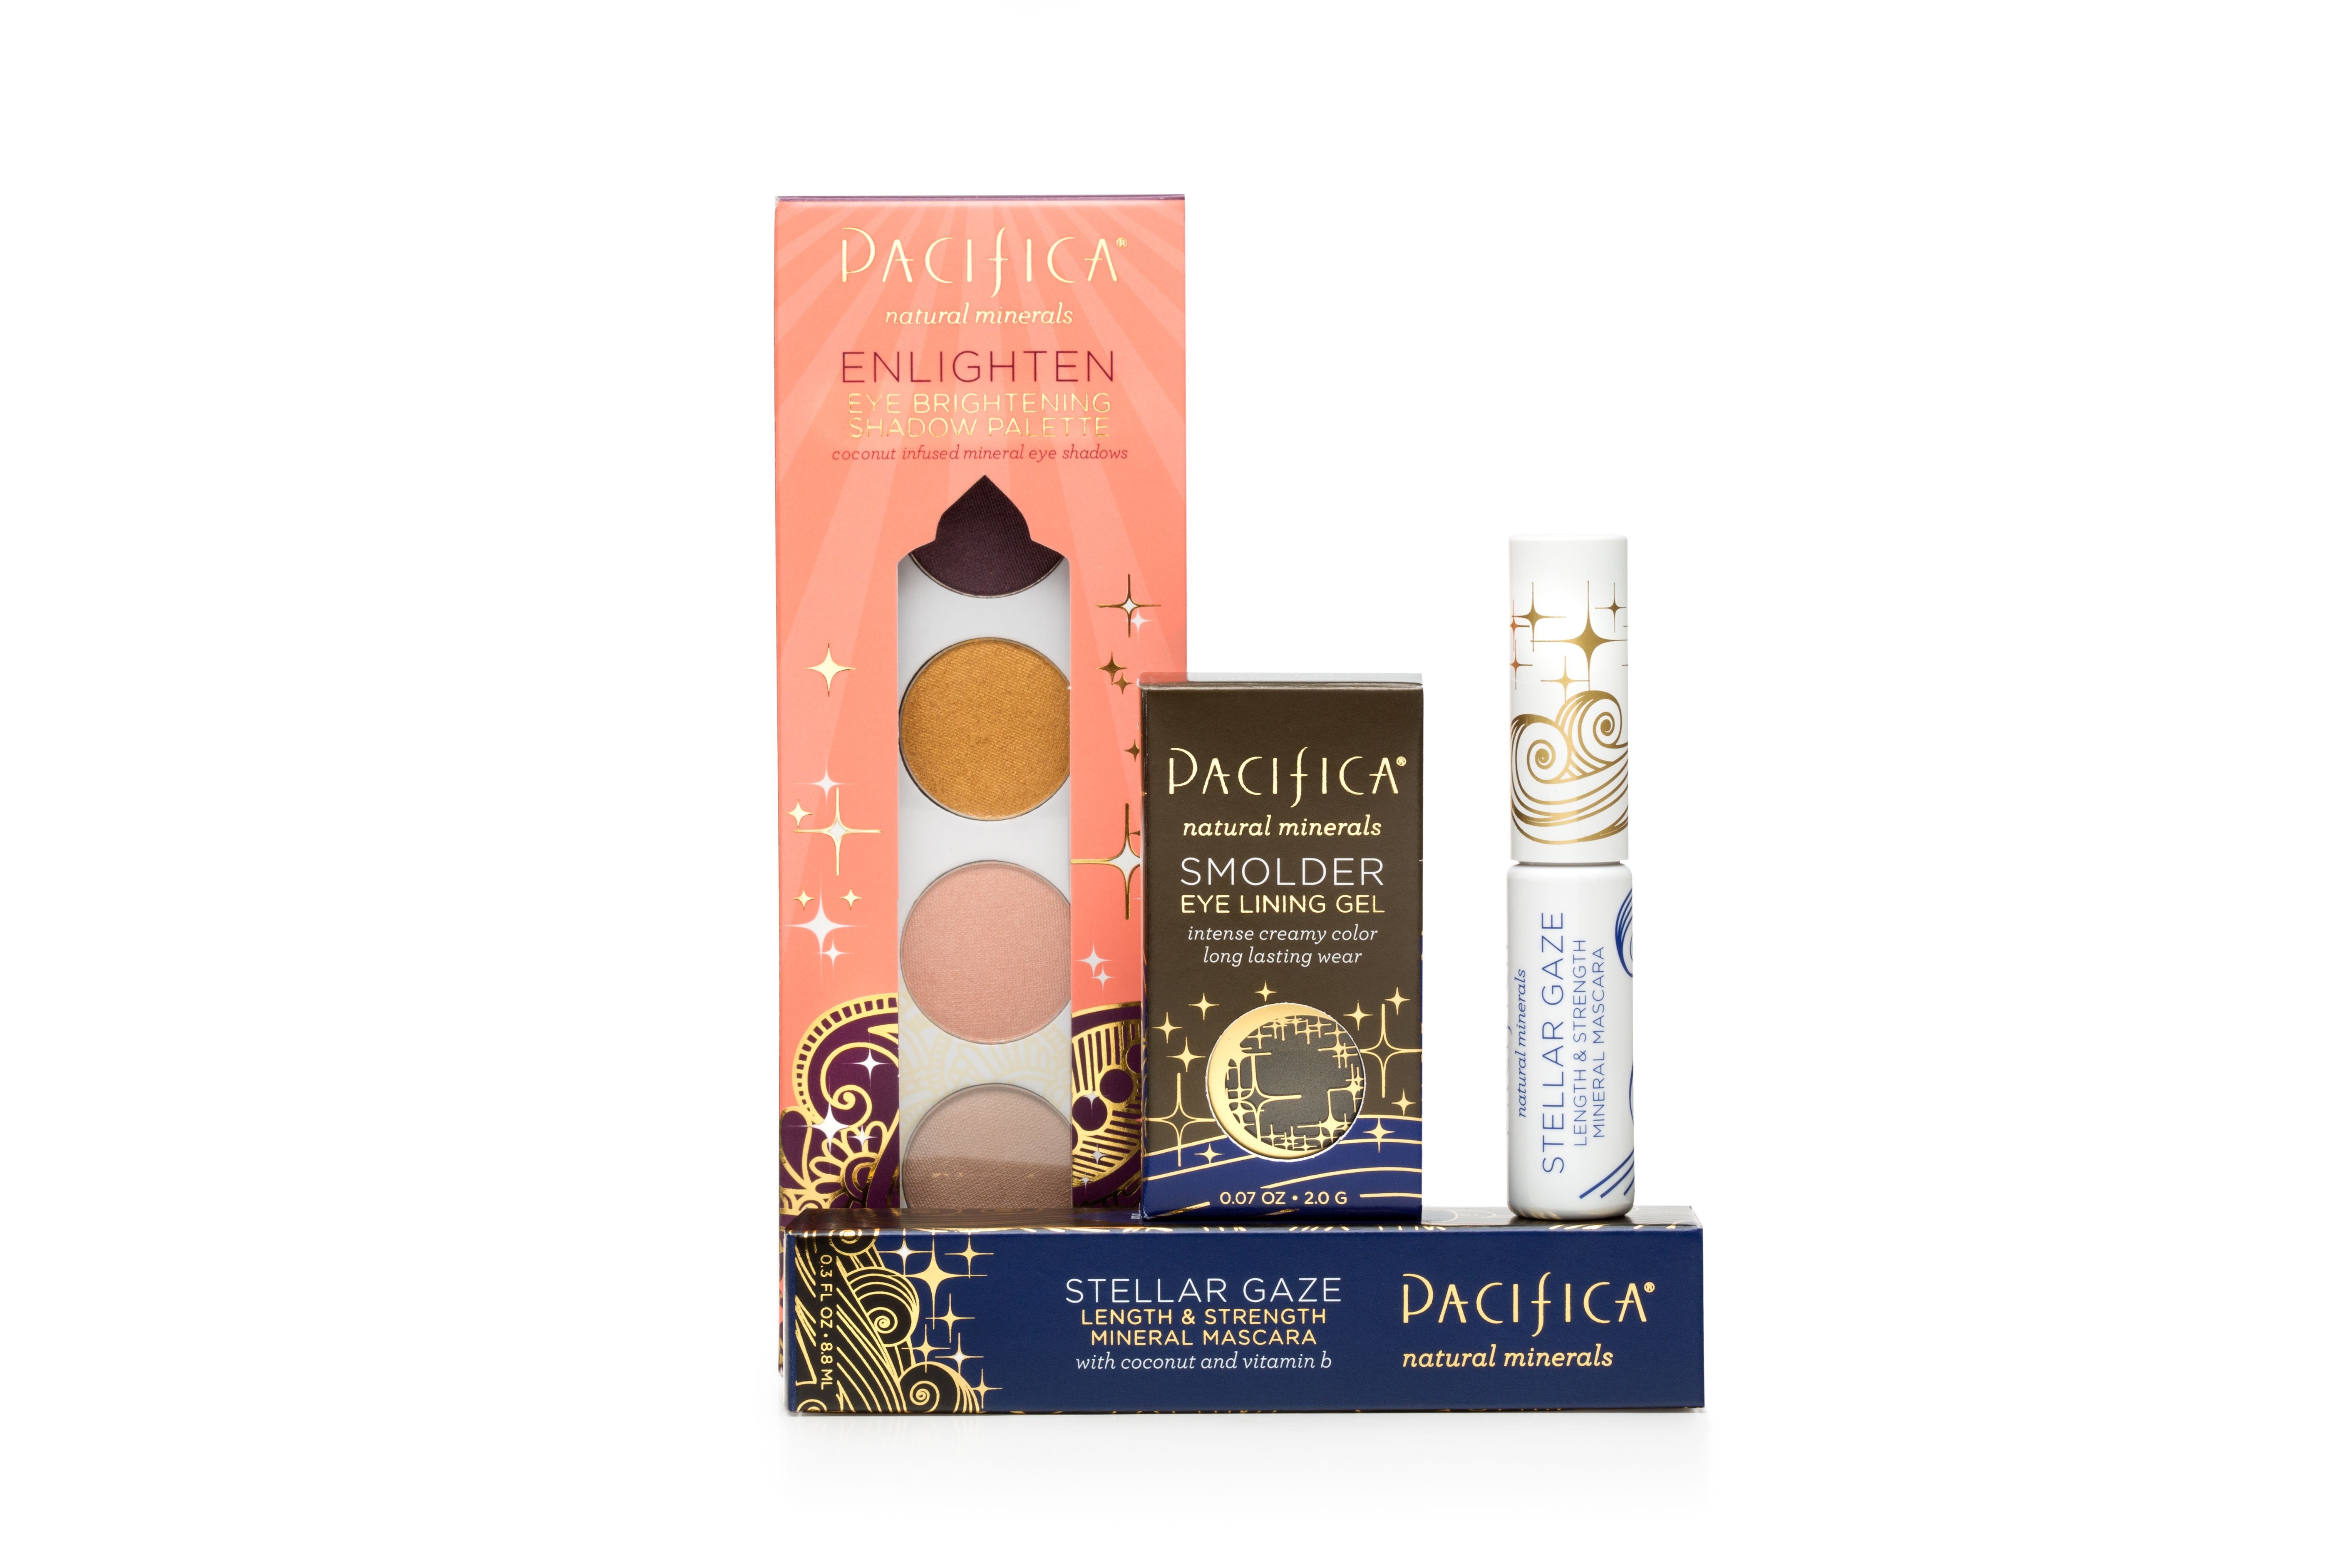 Dreamy Youth Natural Solutions Kit Natural makeup, Best